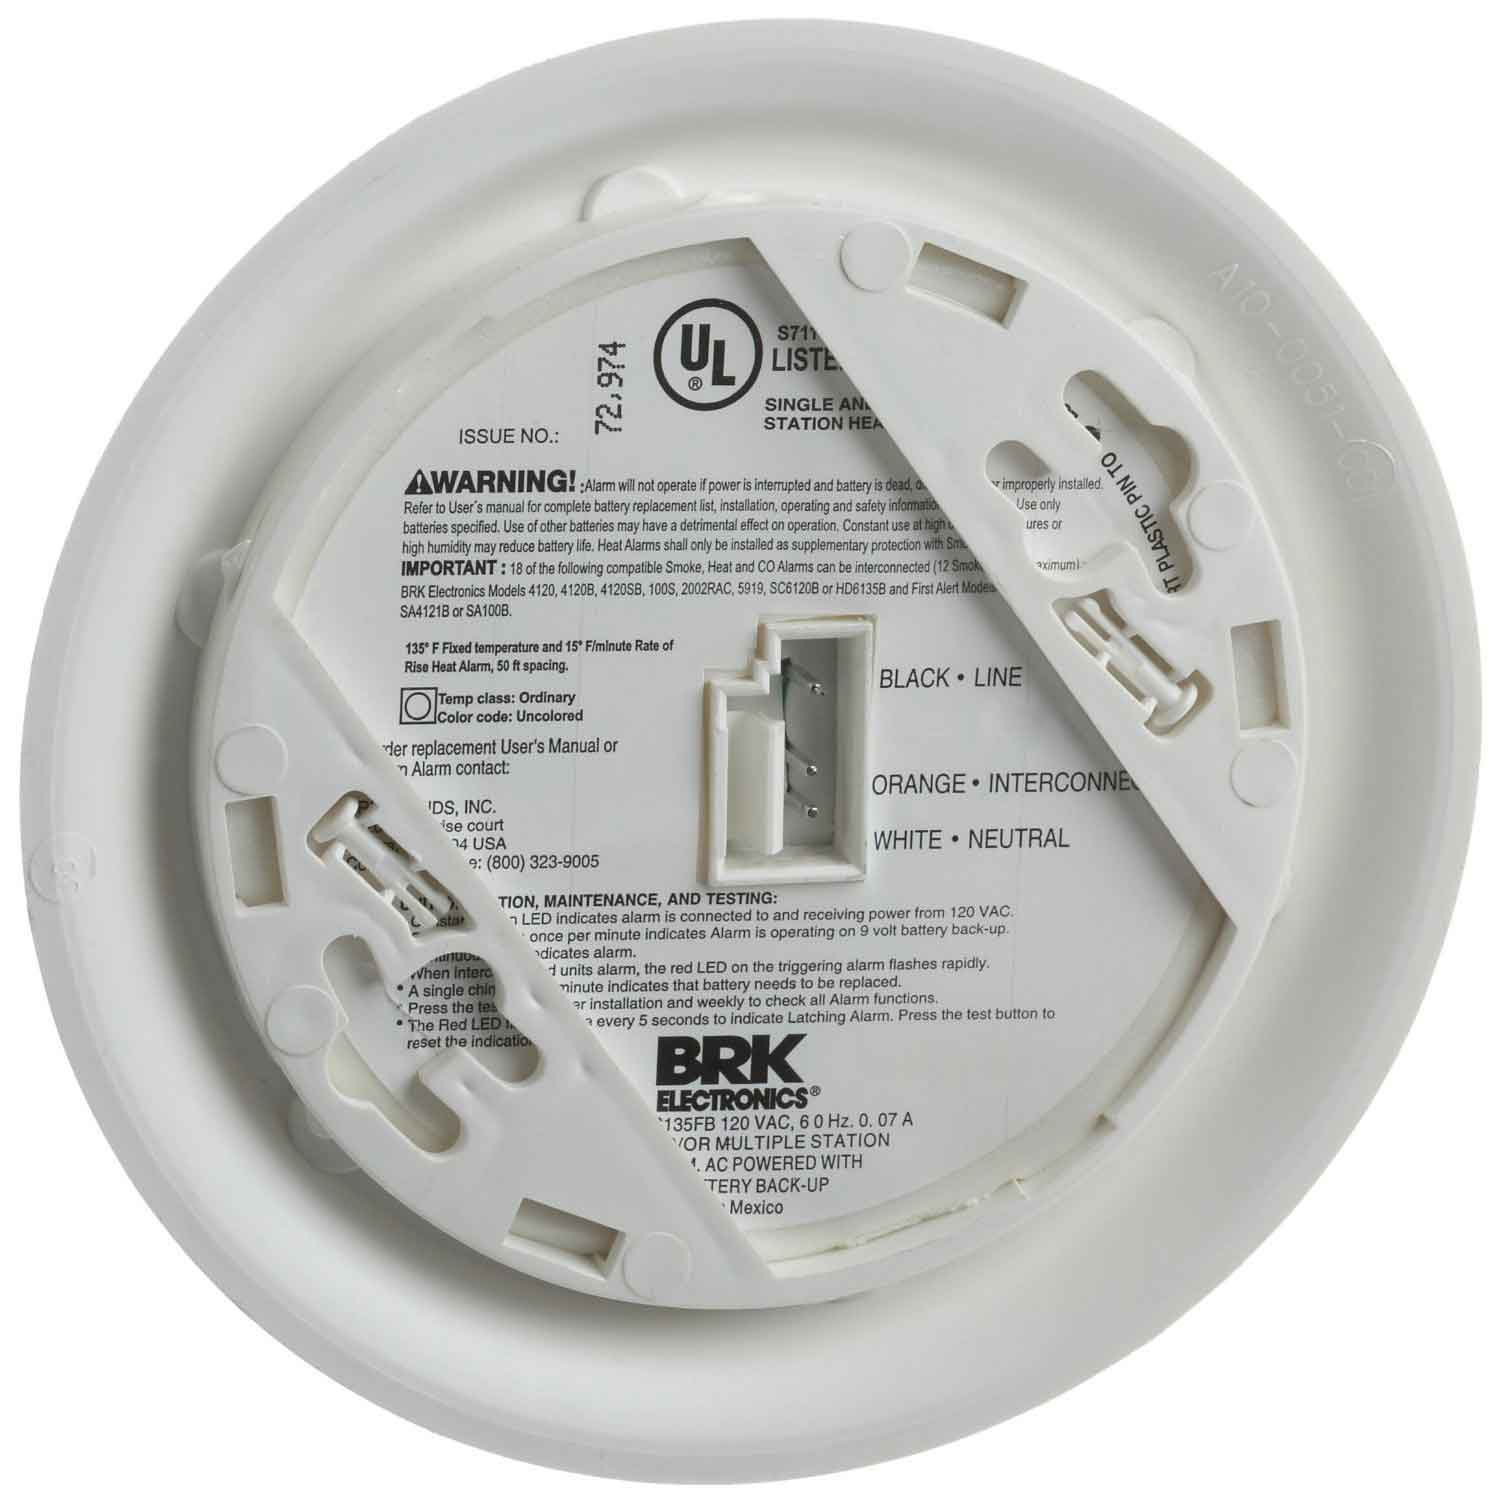 First Alert Hd6135fb Brk Brands Hardwired Heat Alarm With Battery 2wire Smoke Detector Wiring 120 Volt Ac Dc Backup